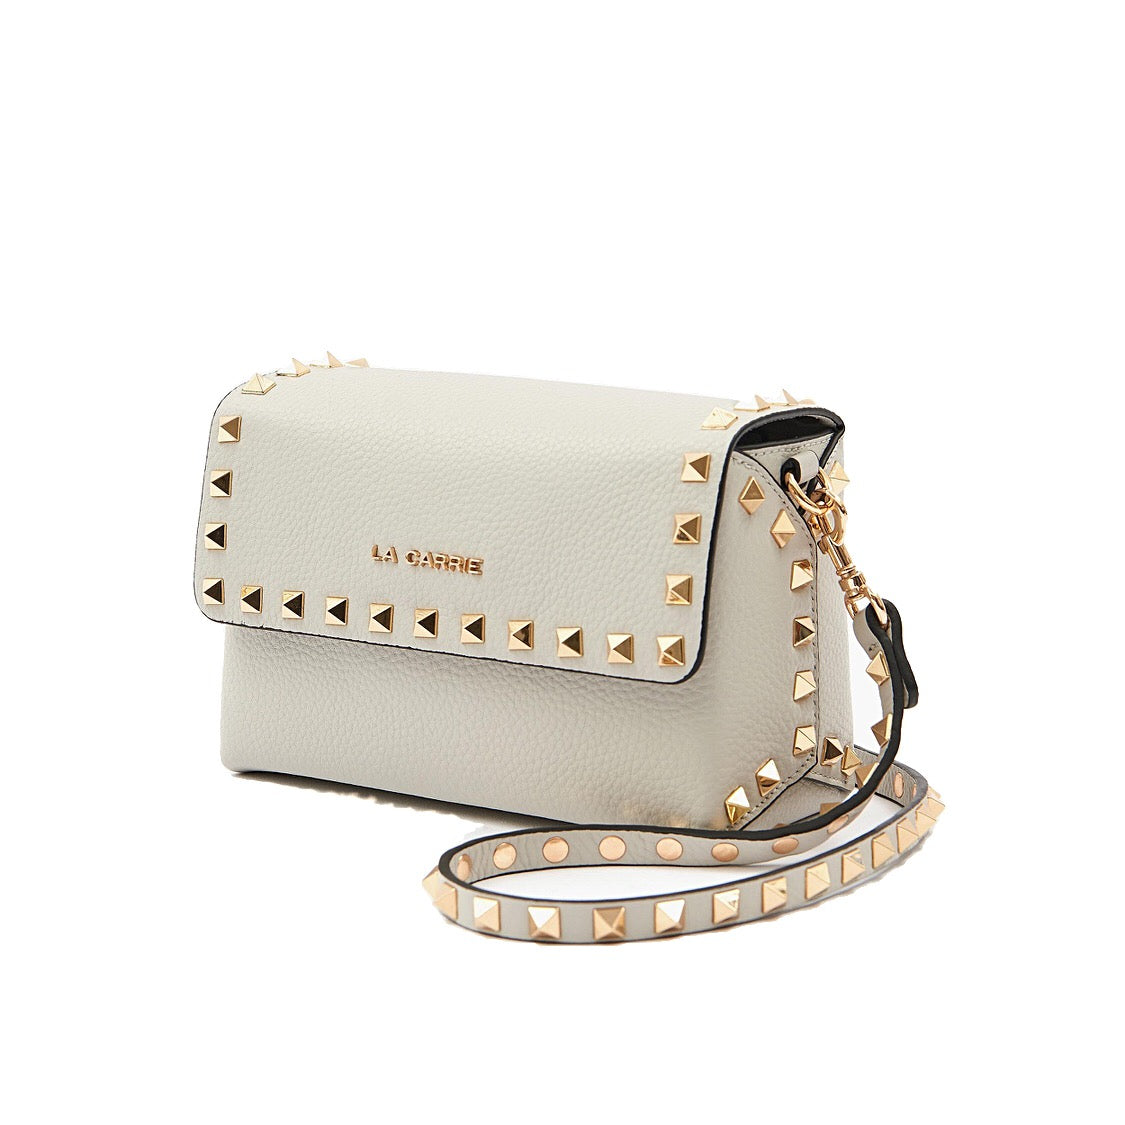 La Carrie Bag Studs Lucy Sm Shoulder Pelle